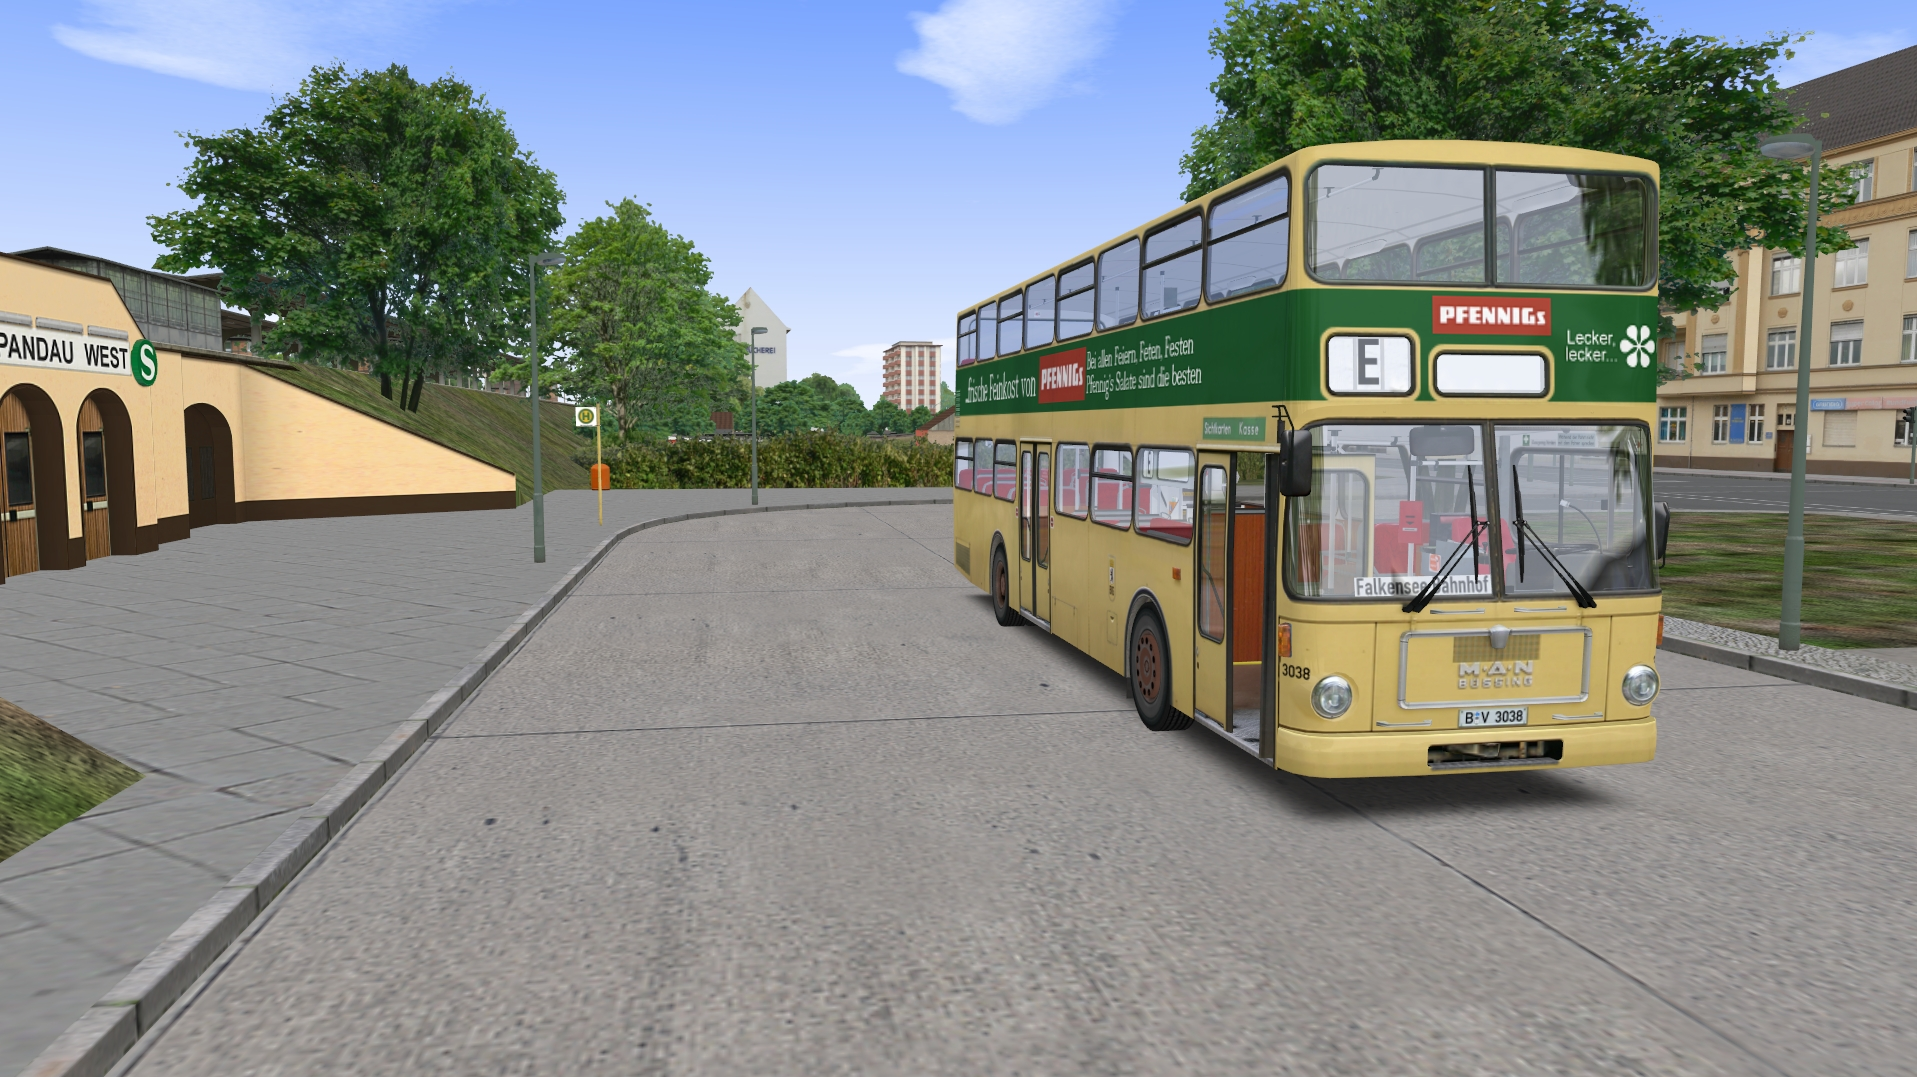 omsi bus simulator 2 12 simulator games mods download. Black Bedroom Furniture Sets. Home Design Ideas